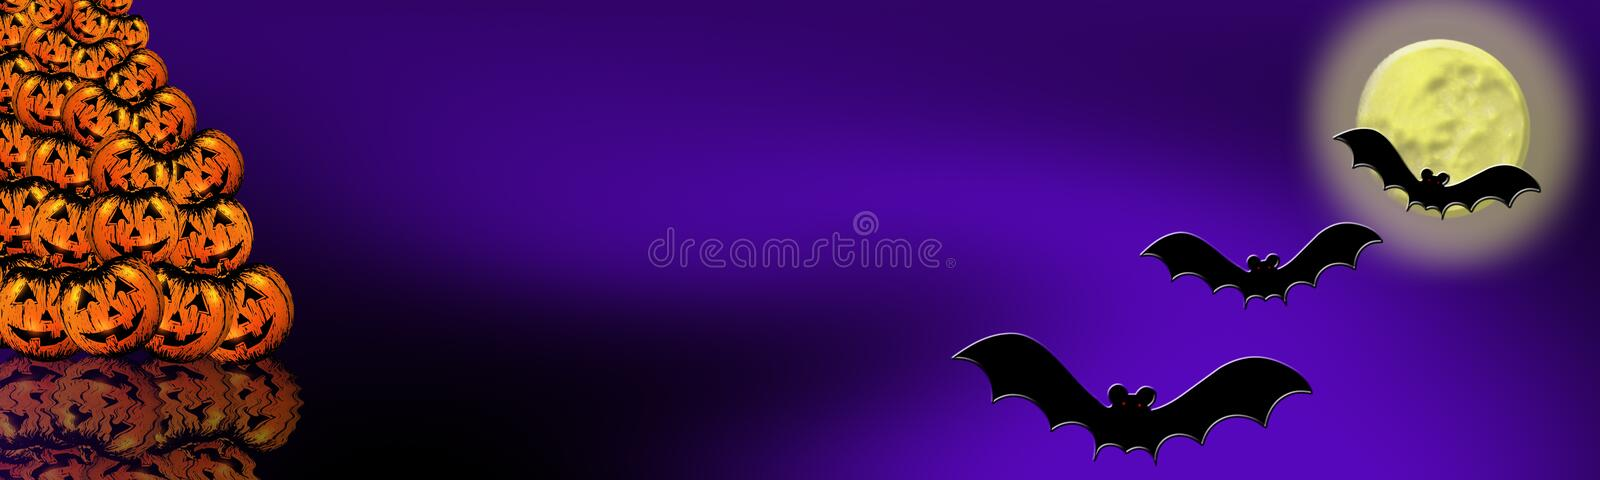 Halloween banner 6 royalty free stock image